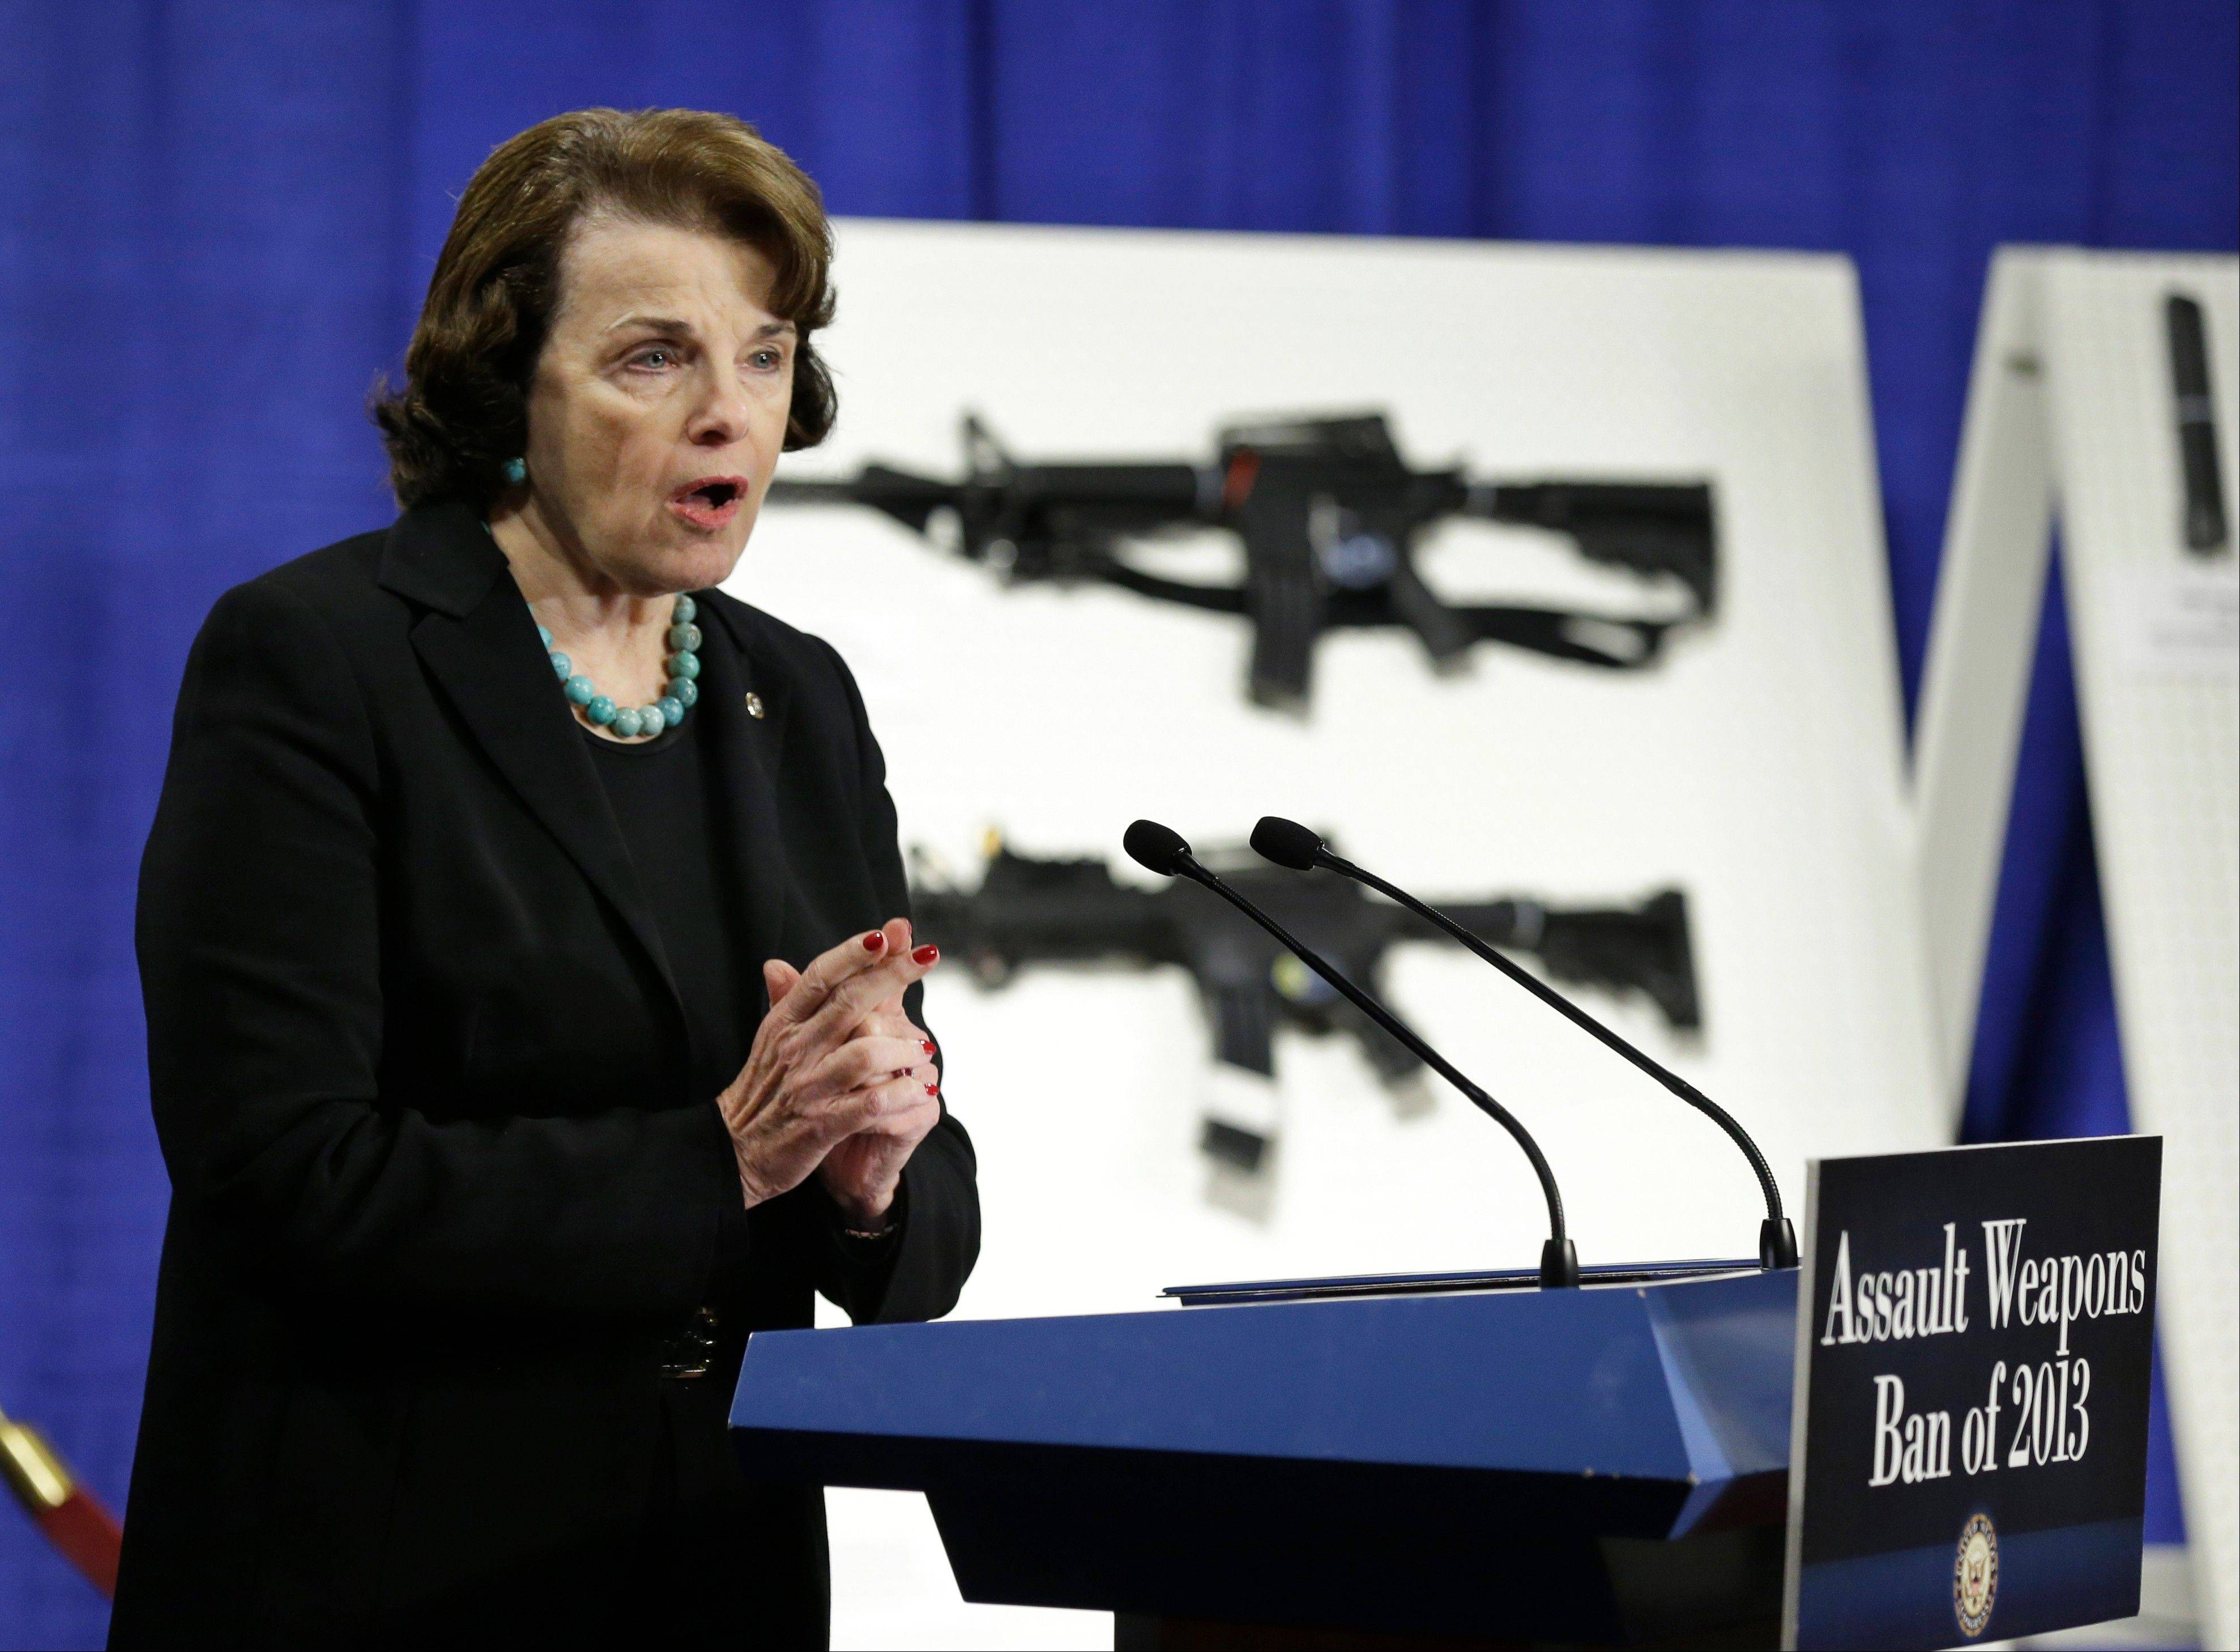 Sen. Dianne Feinstein has introduced legislation on assault weapons and high-capacity ammunition feeding devices.